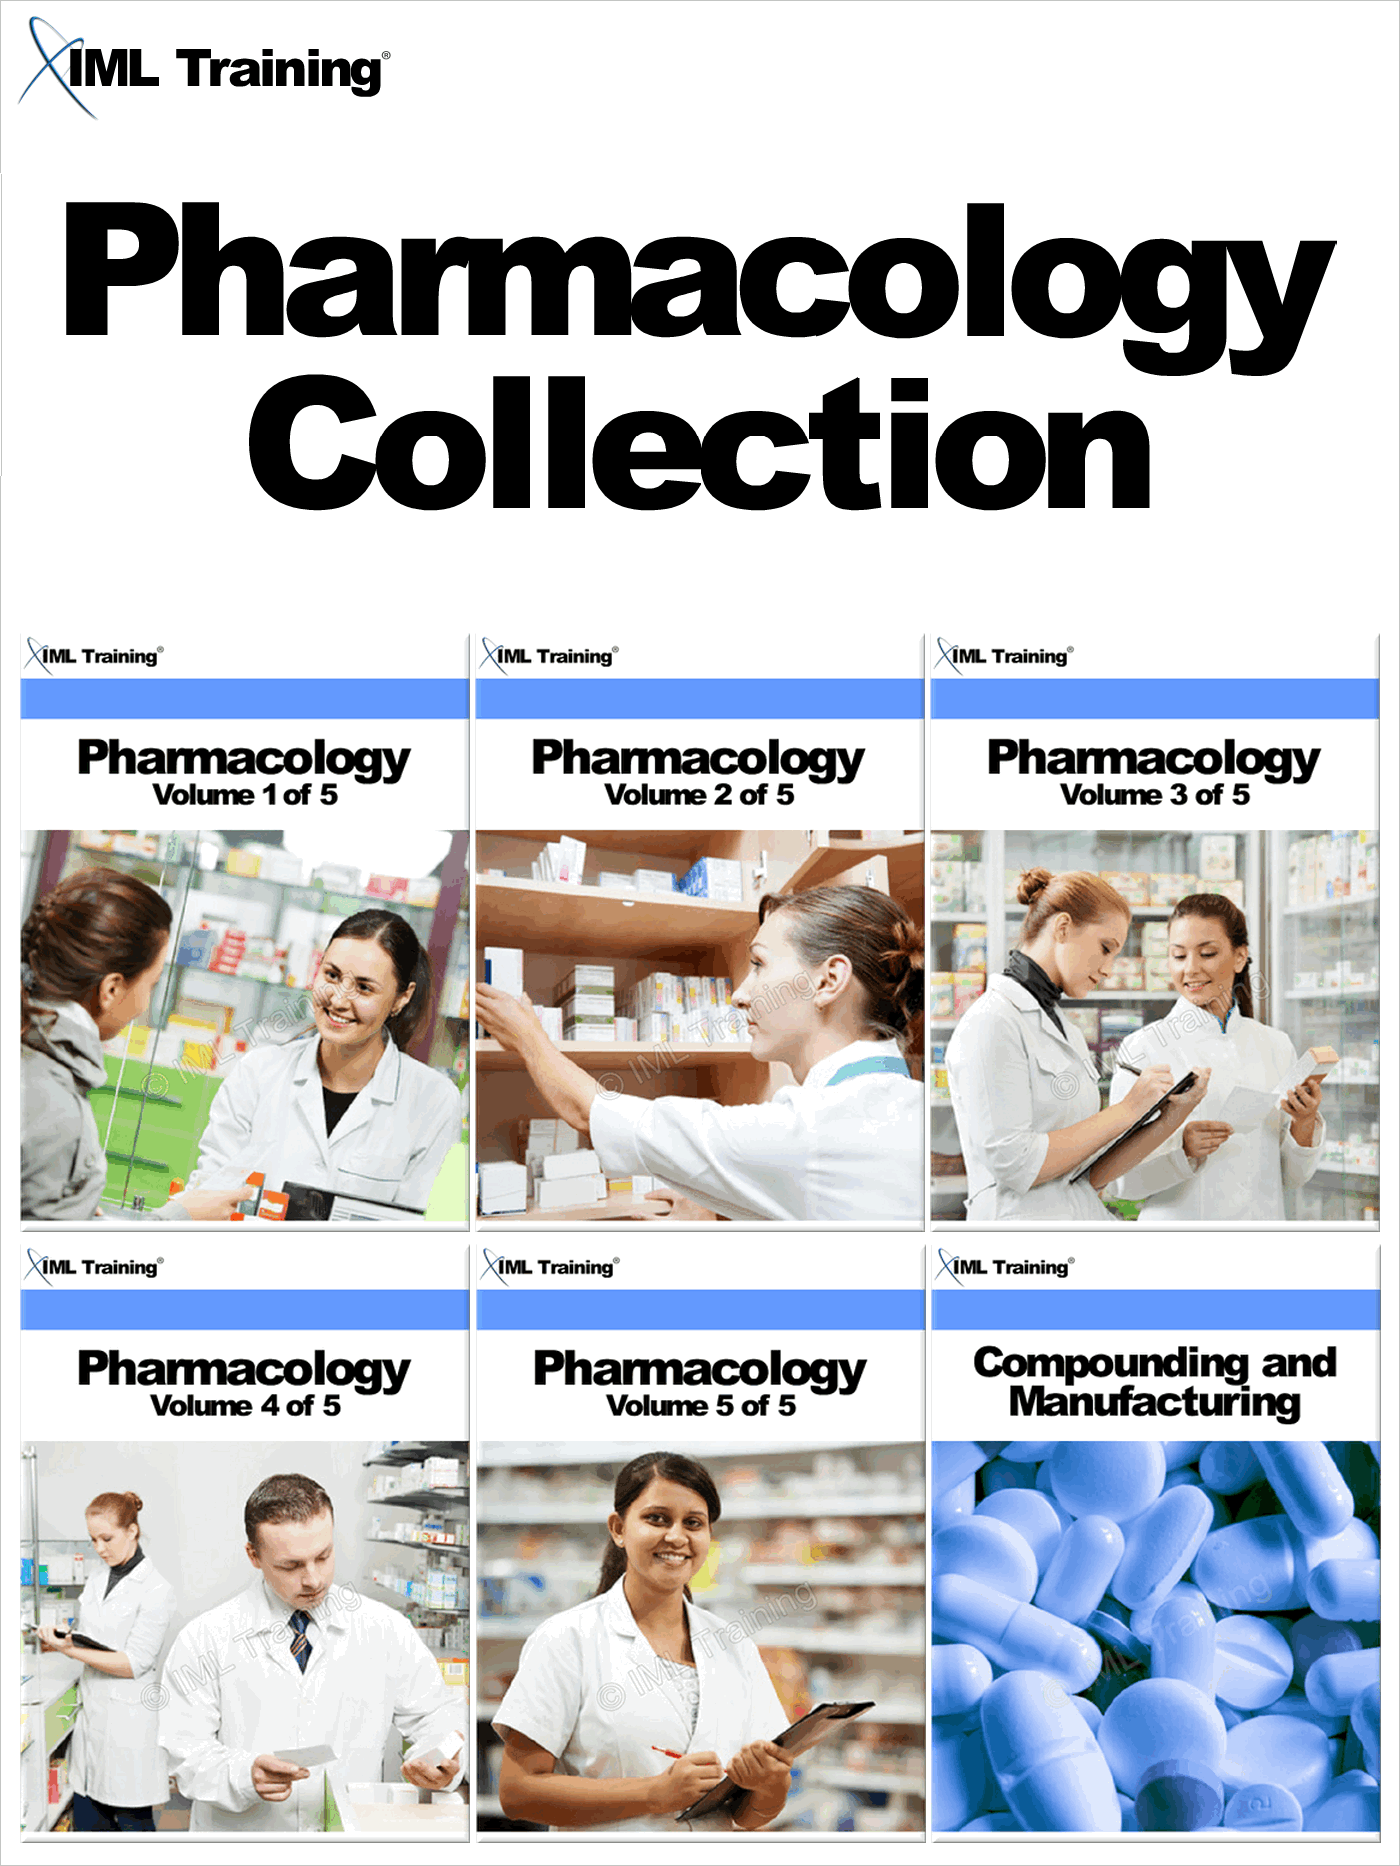 Pharmacology Collection Includes Pharmacology Volumes 1 to 5,  and Compounding and Manufacturing